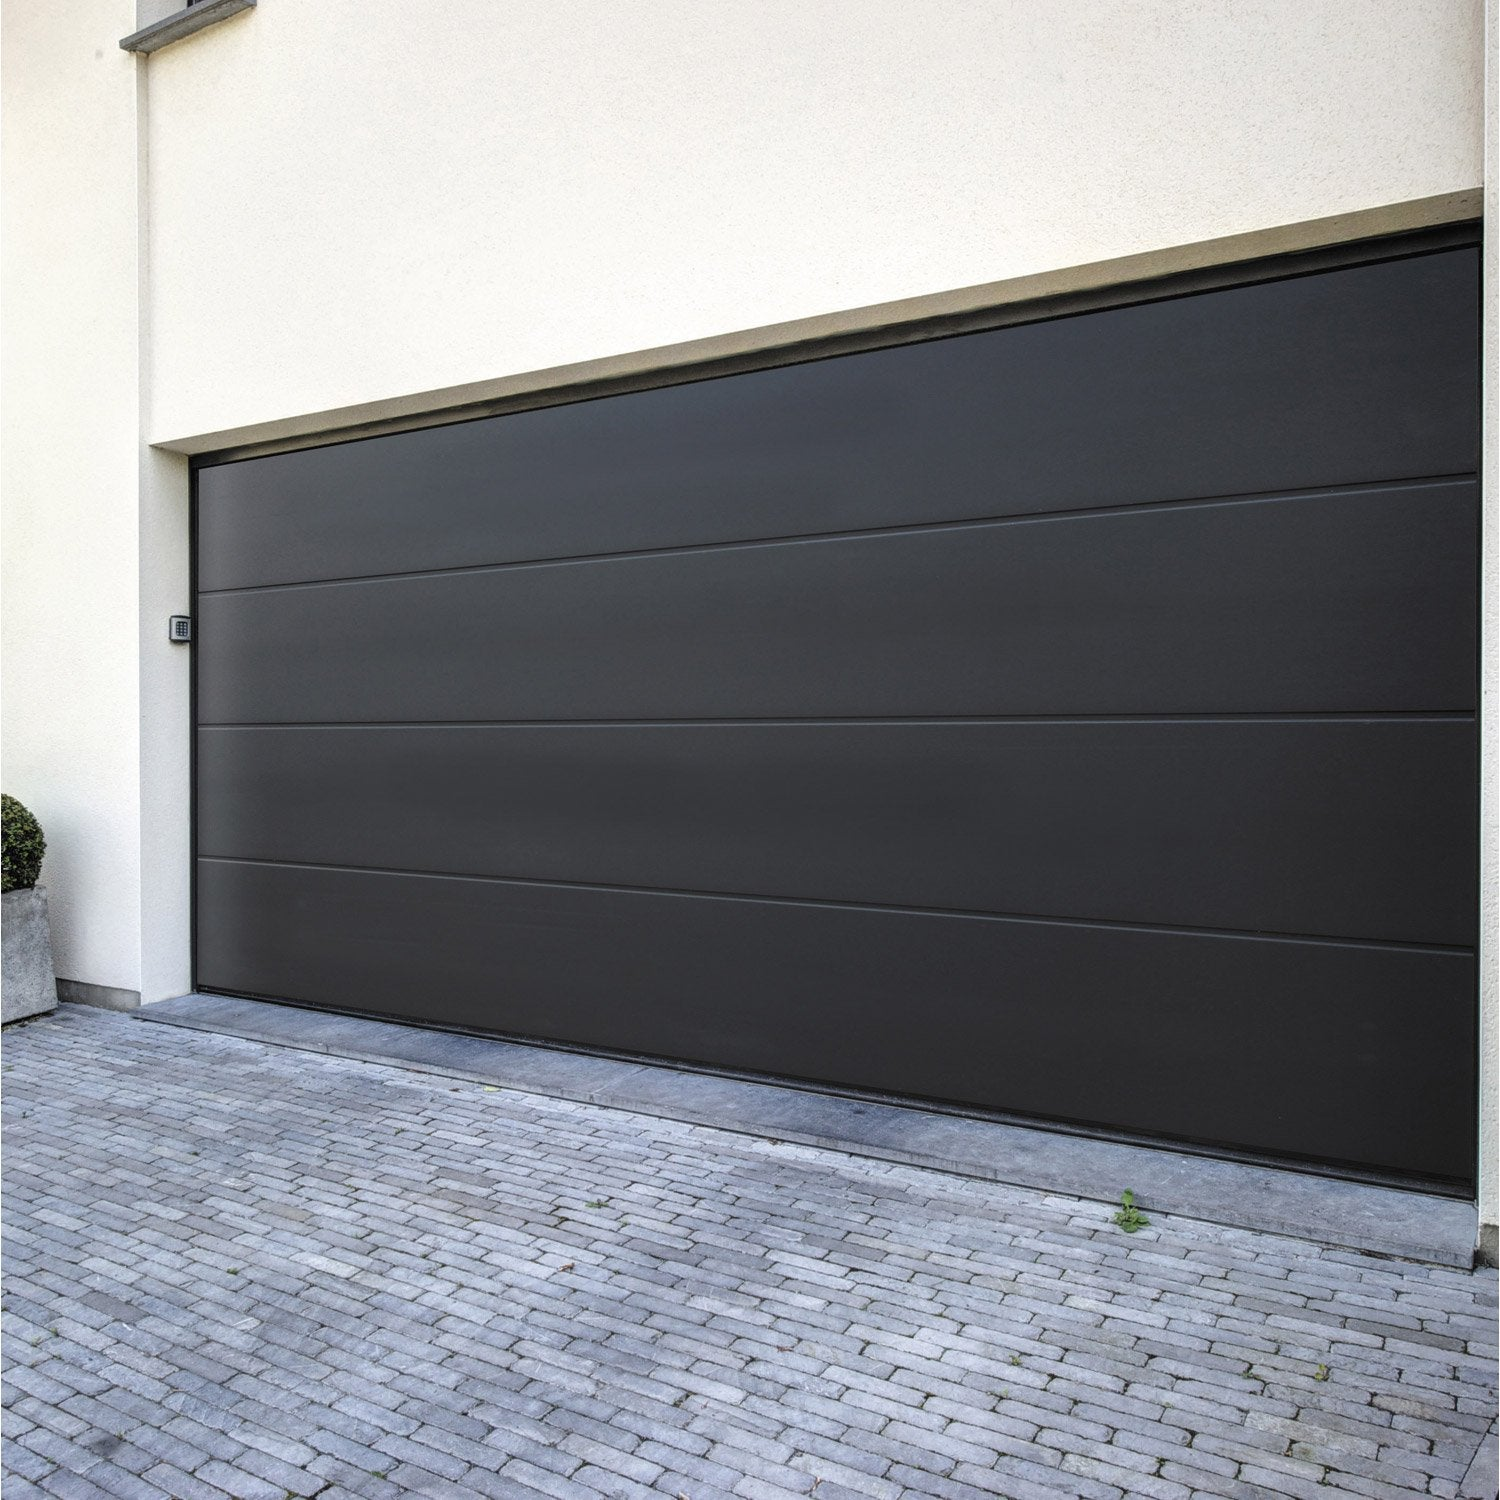 Pose d 39 une porte de garage sectionnelle 200x300cm leroy merlin - Leroy merlin porte garage sectionnelle ...